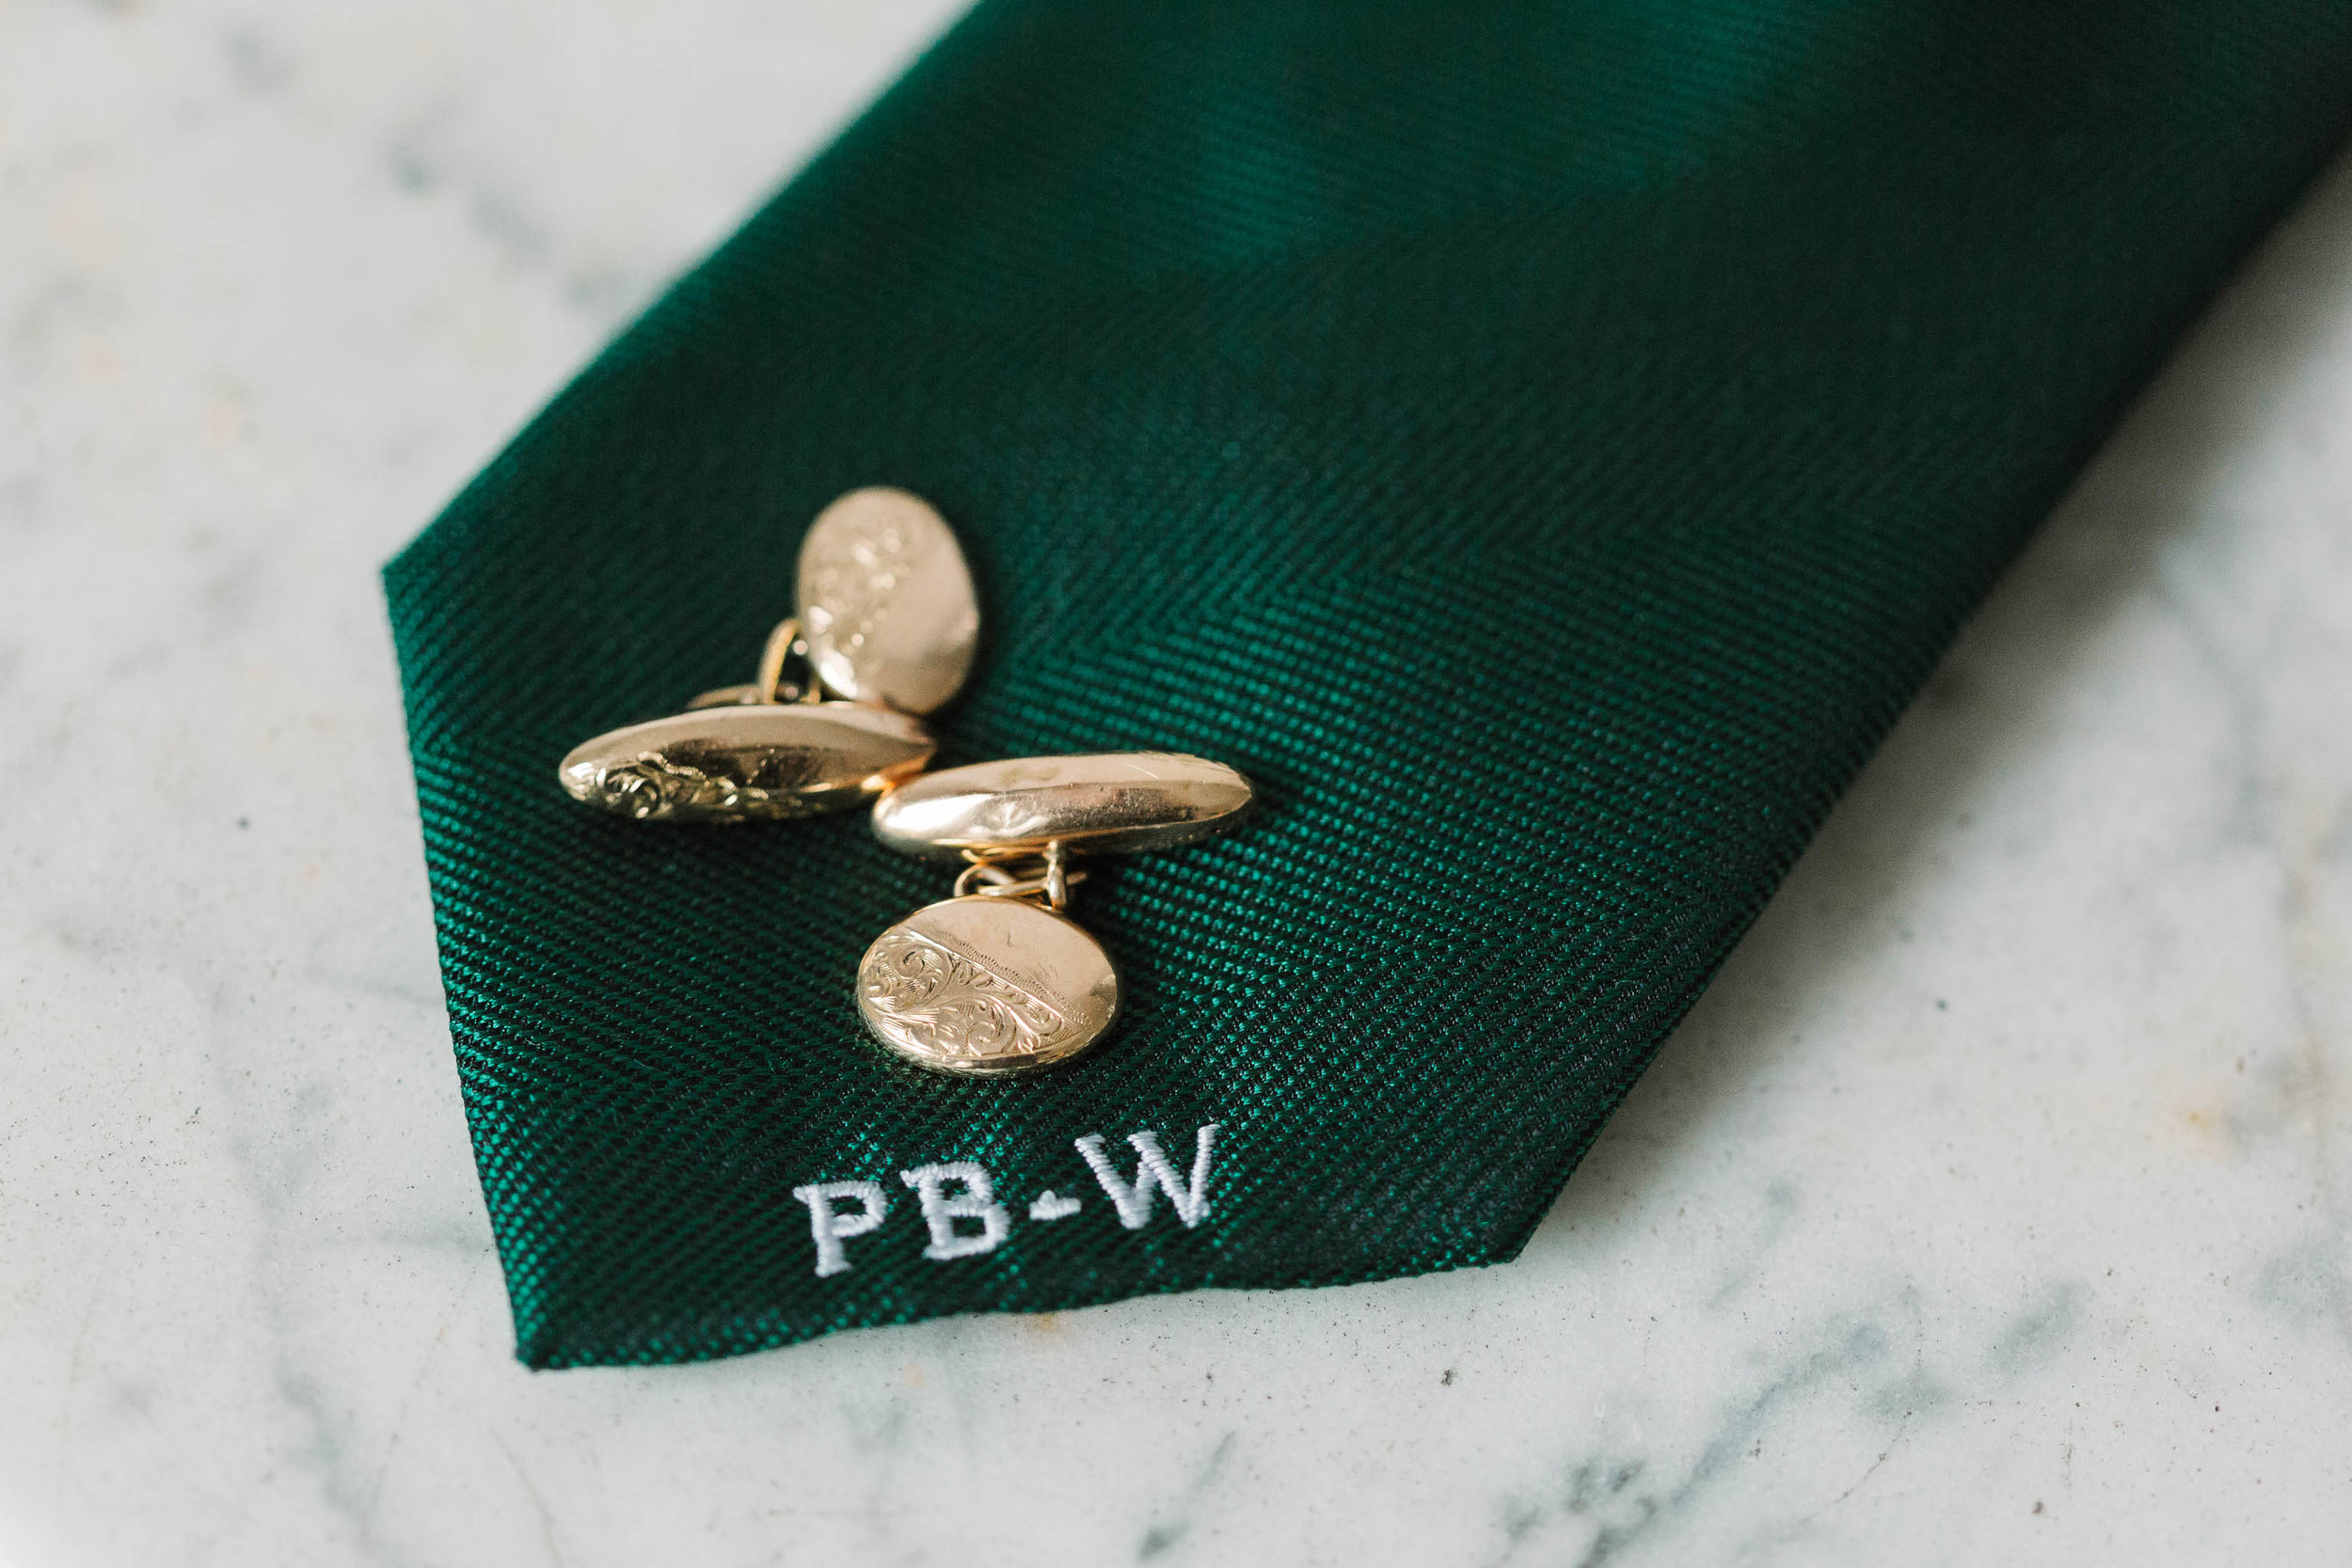 grooms embroidered initials on tie and cufflinks